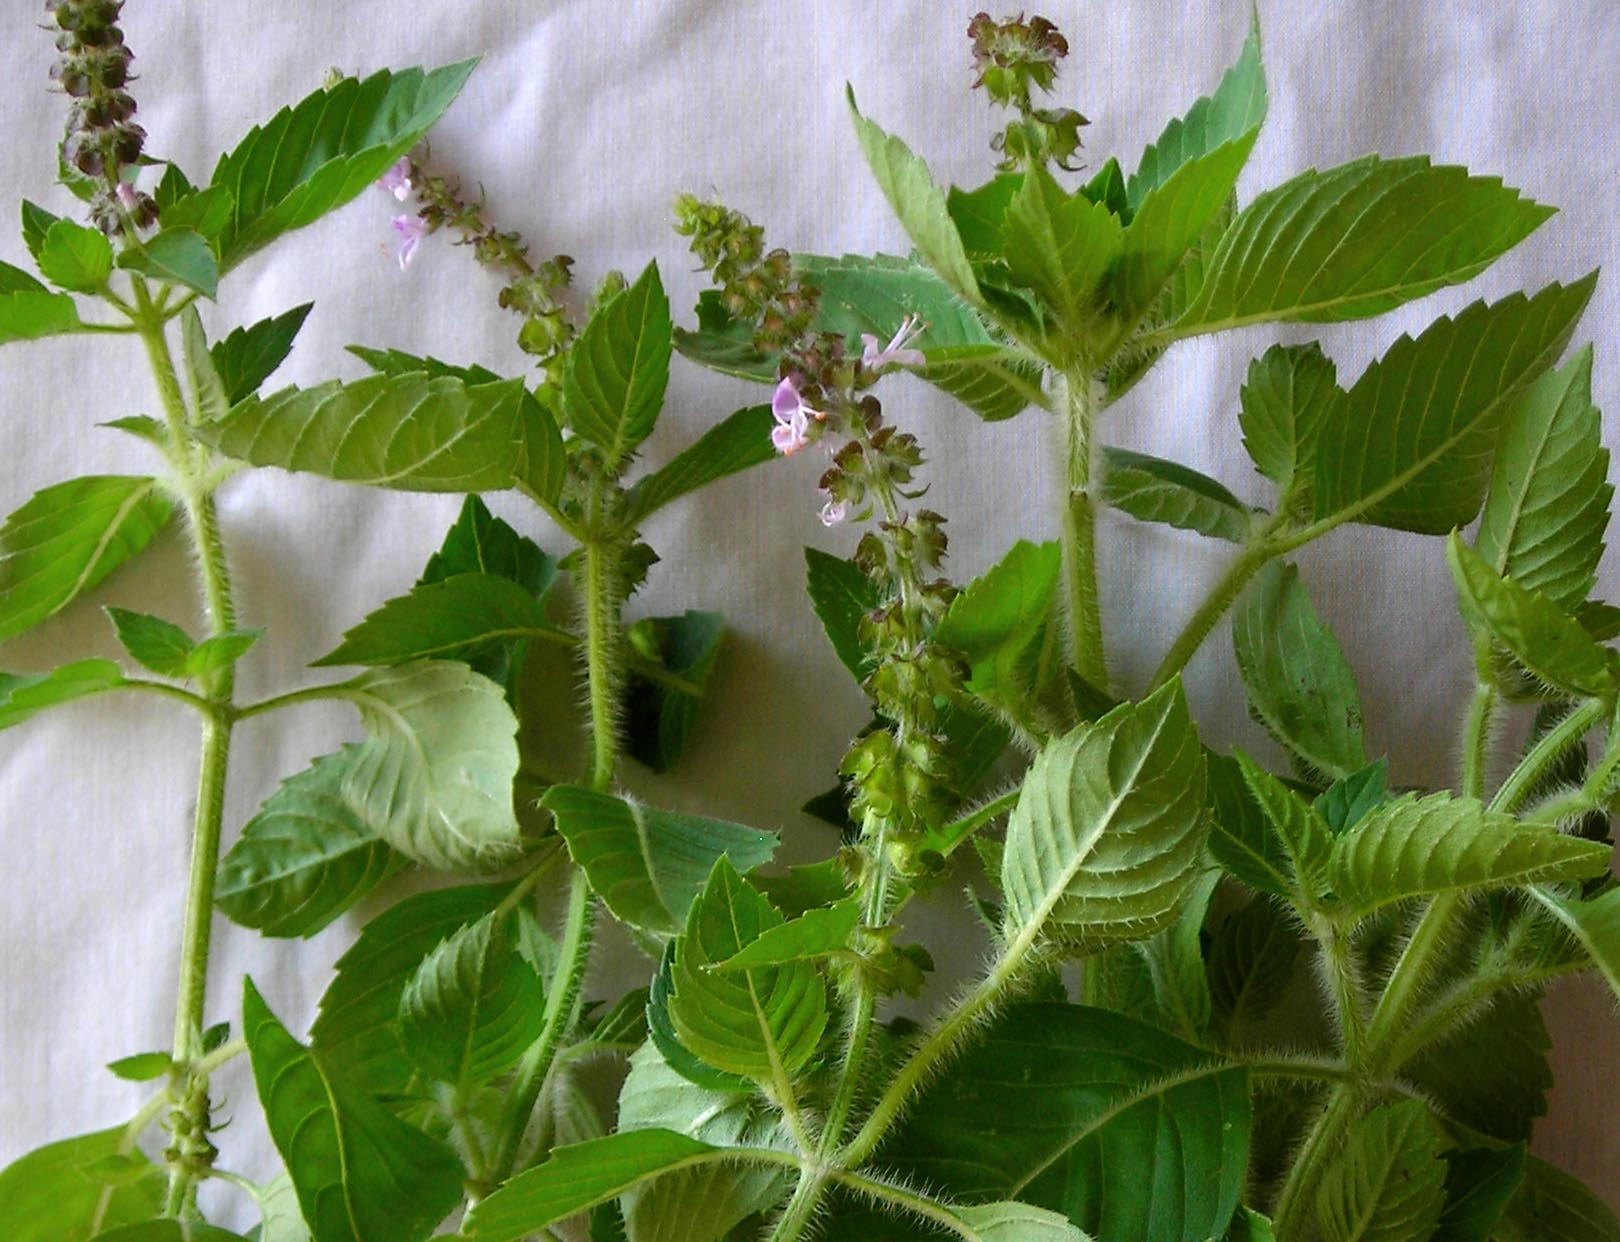 Are Basil Seeds a New Superfood  Care2 Healthy Living